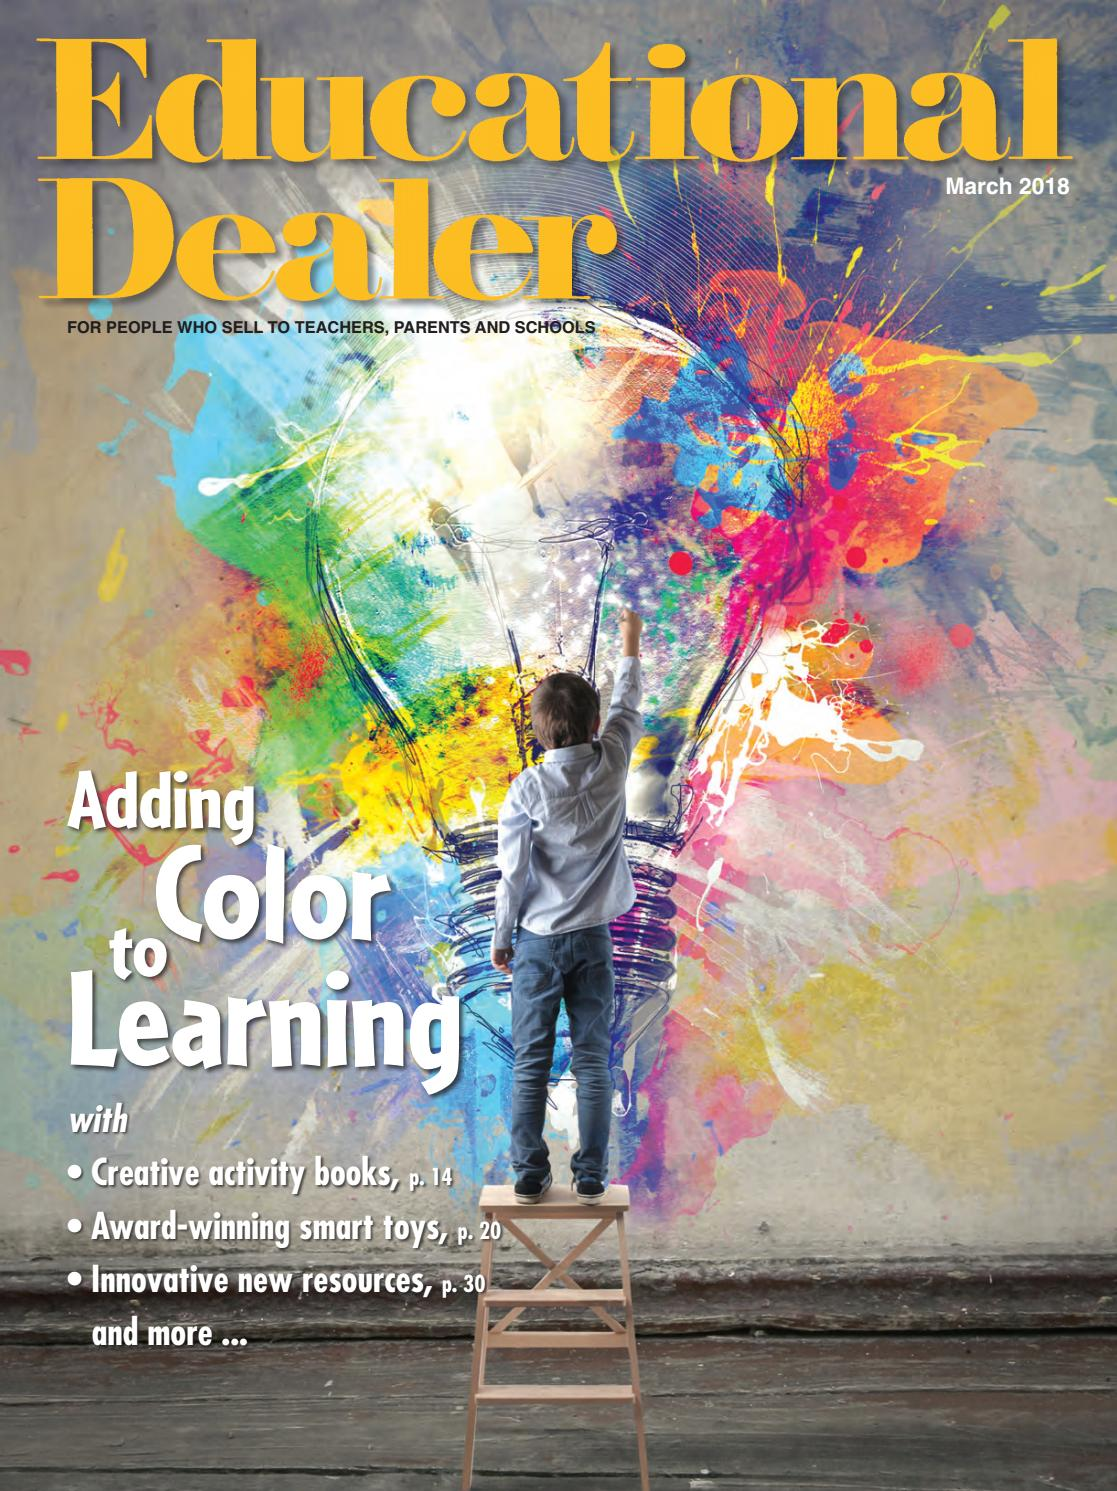 Educational dealer mar 2018 by fahy williams publishing issuu fandeluxe